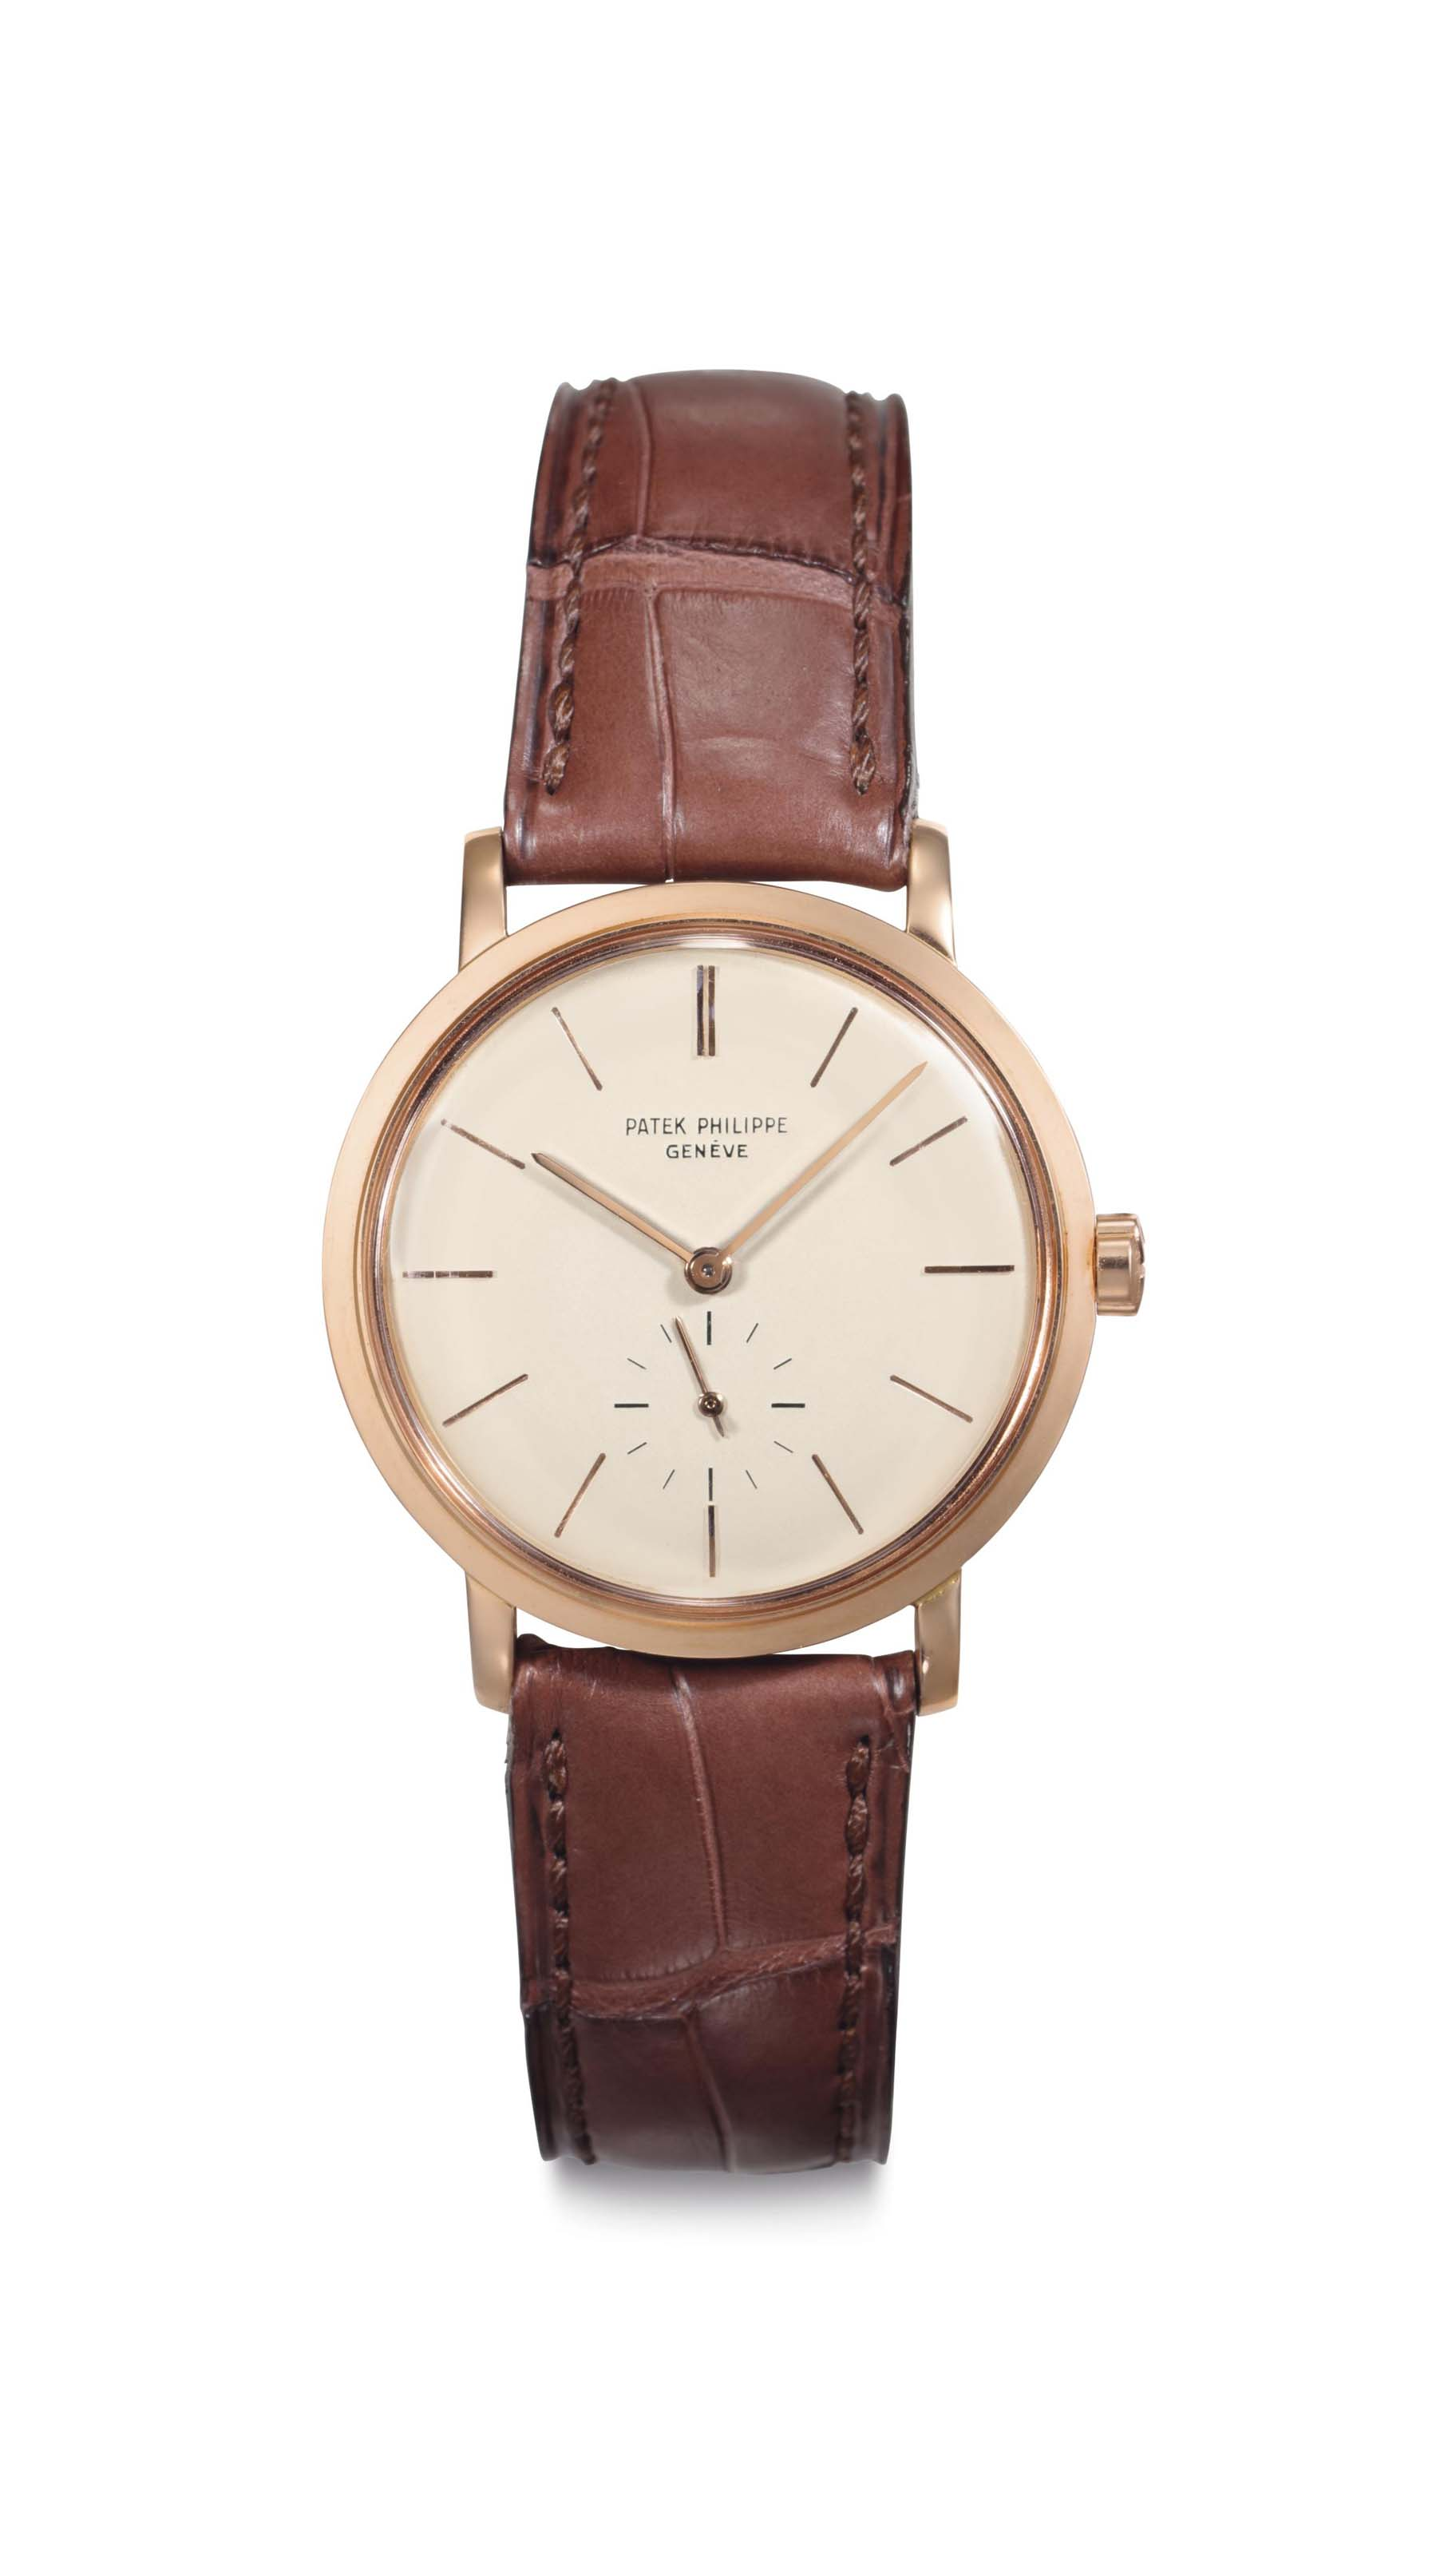 Patek philippe a fine 18k pink gold automatic wristwatch signed patek philippe geneve ref for Patek philippe geneve